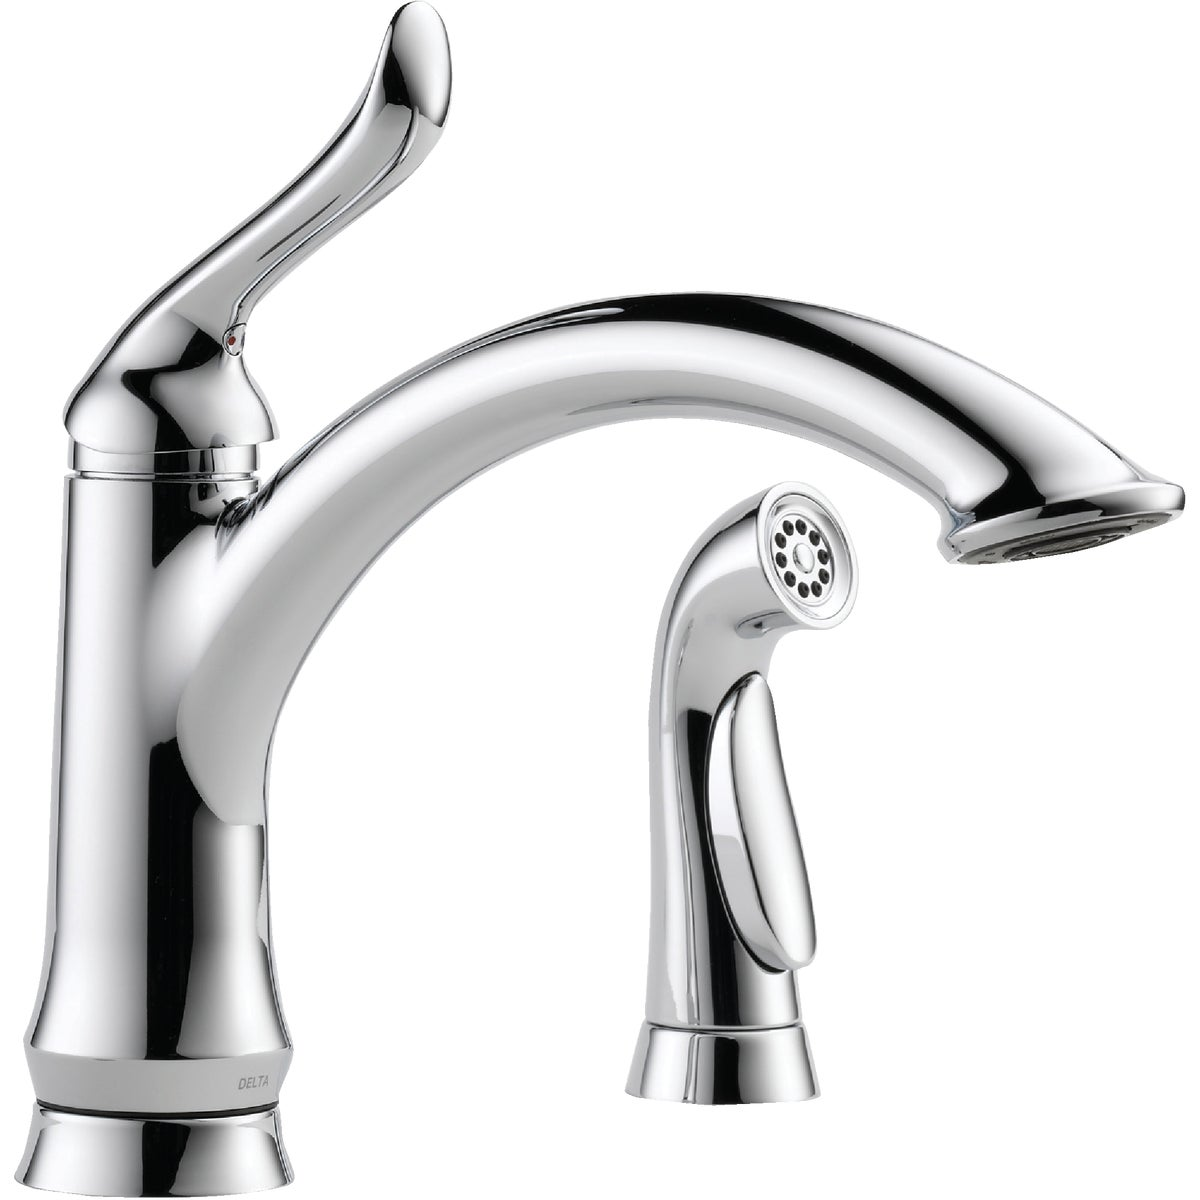 1H CHR KIT FAUCET W/SPRY - 4453-DST by Delta Faucet Co